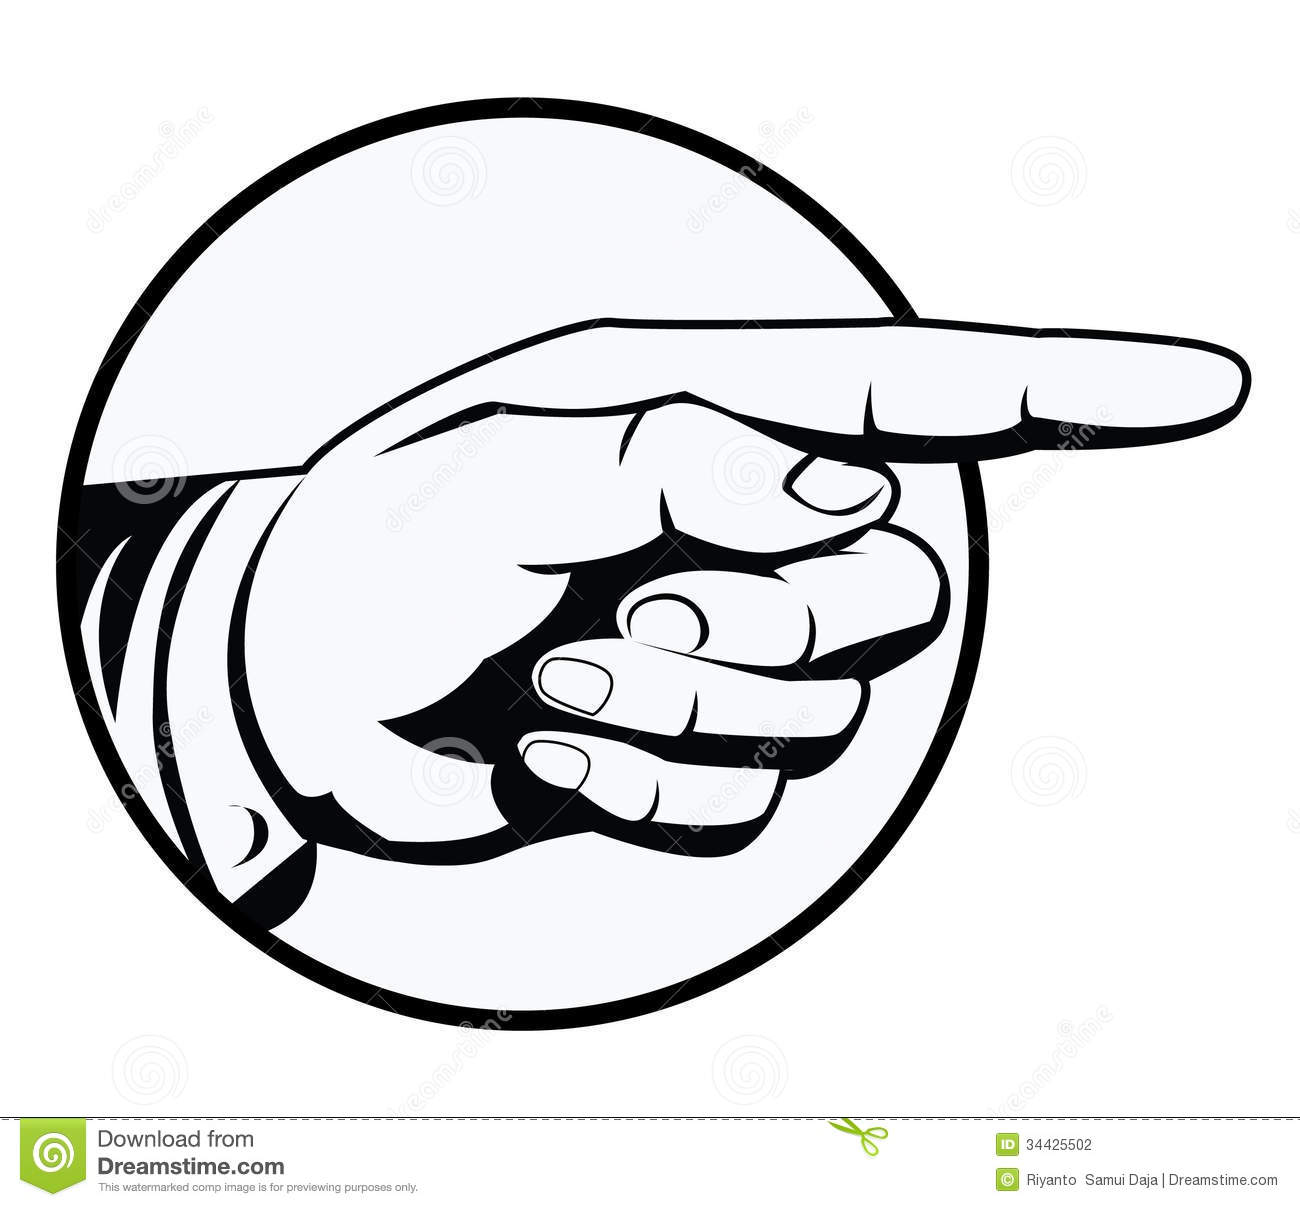 Pointing Hand Stock Vector Illustration Of Pointing